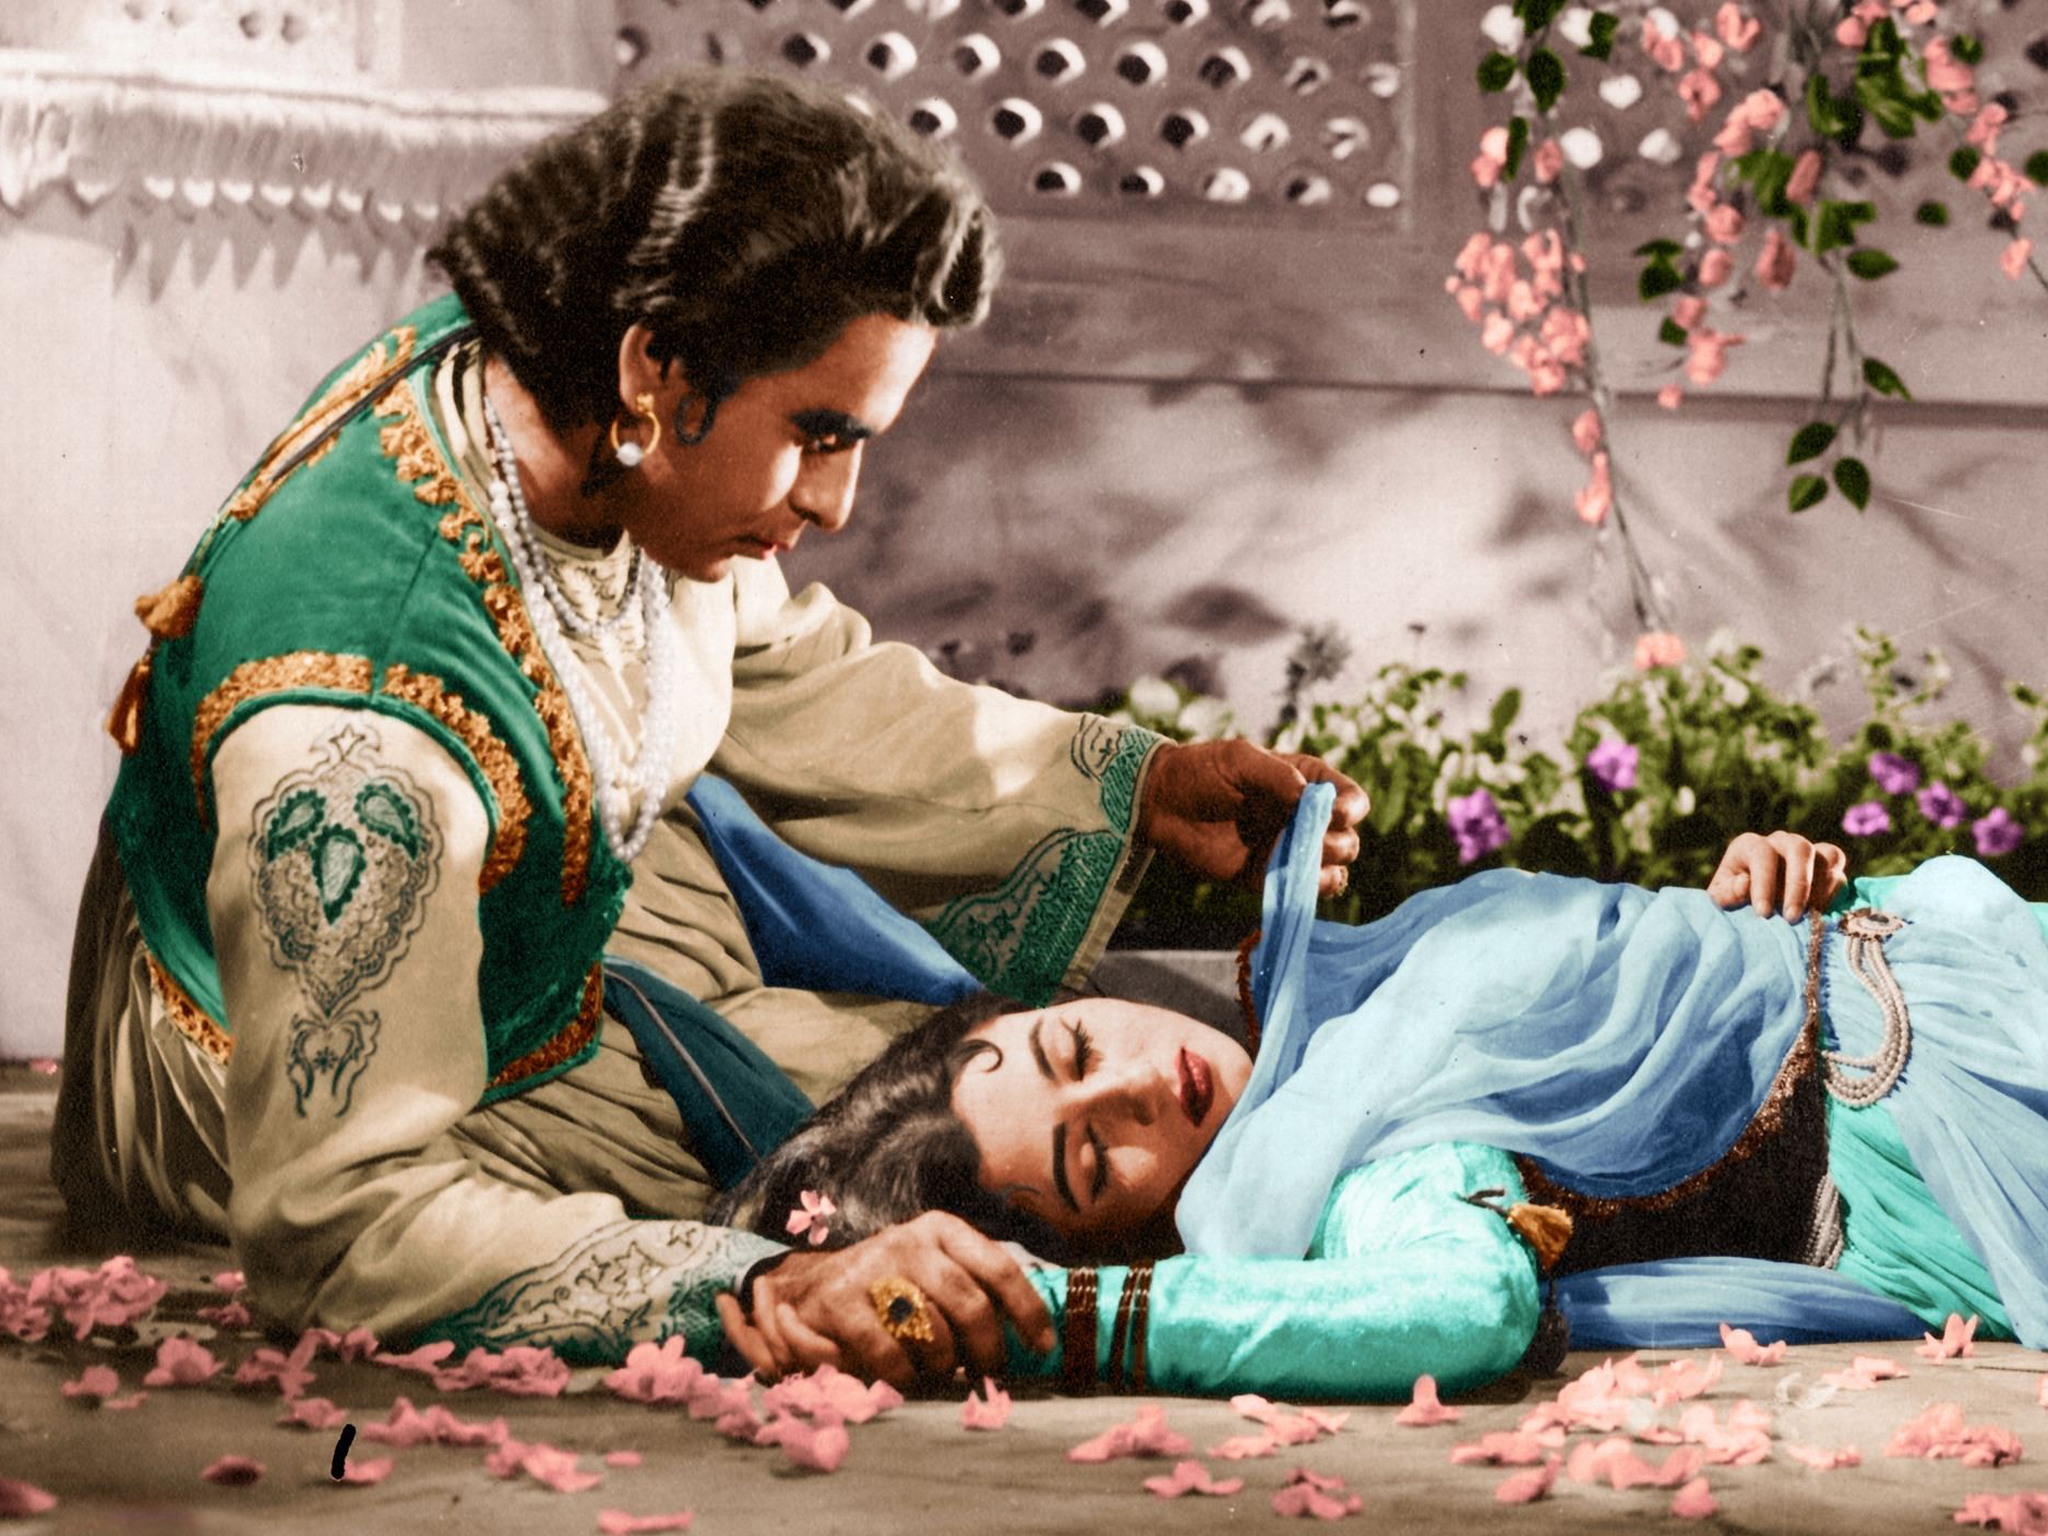 Bollywood movie: Mughal-e-Azam